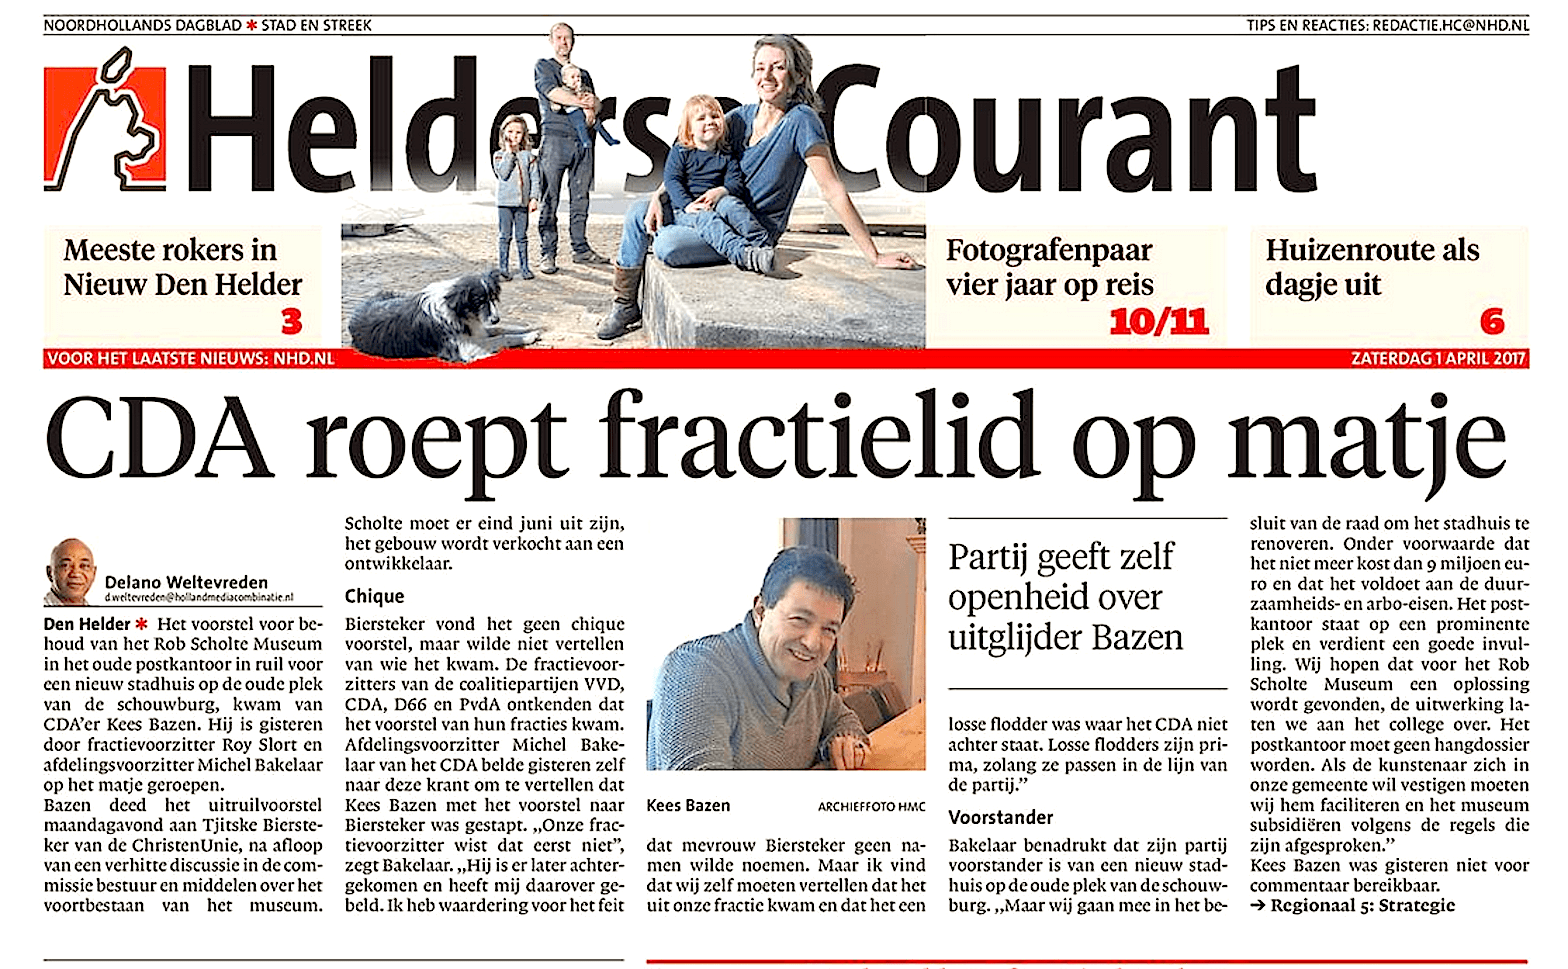 Noordhollands Dagblad, 1 april 2017